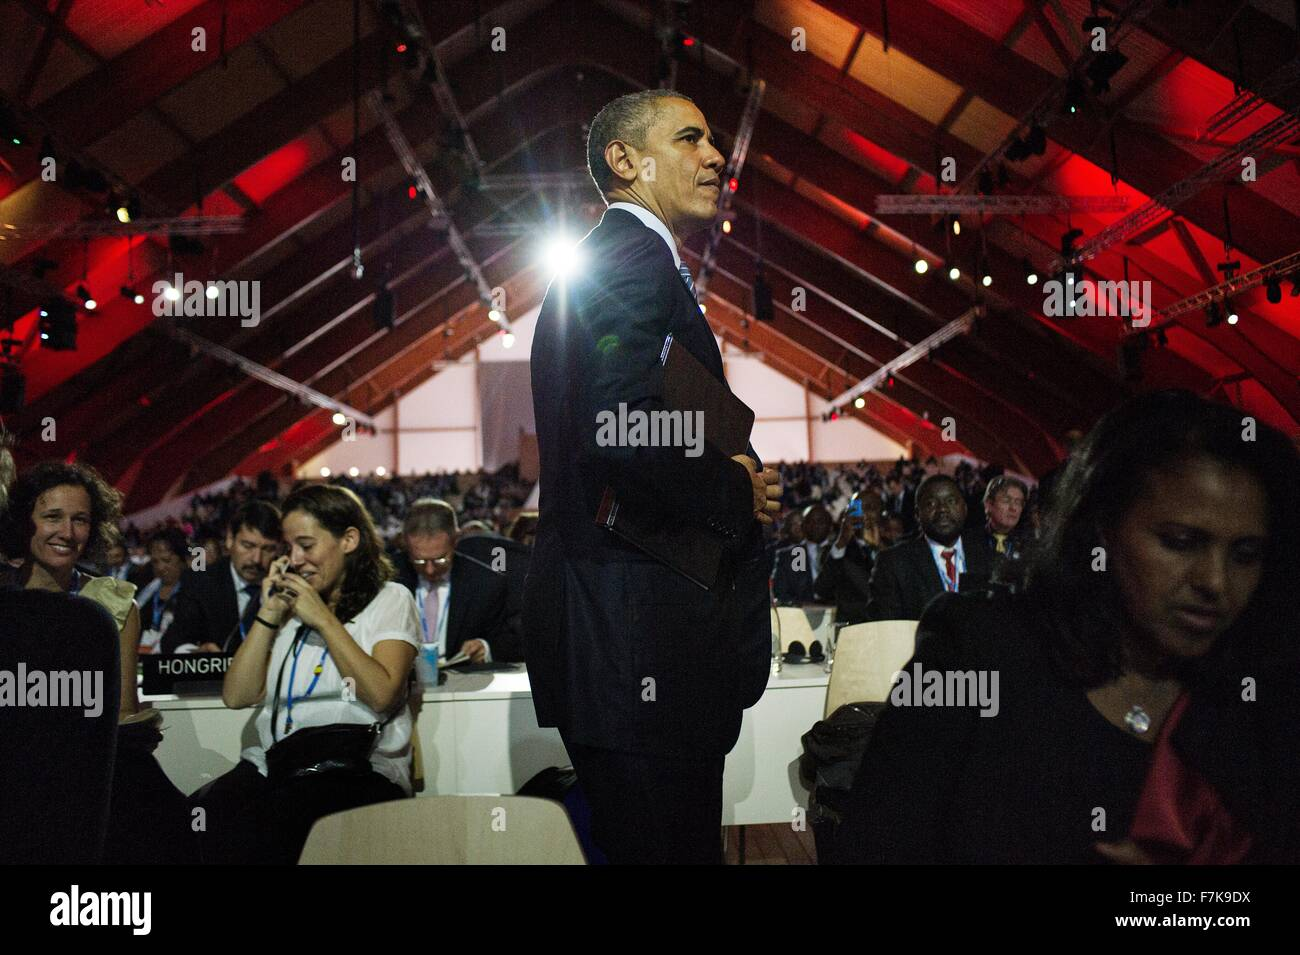 Le Bourget, France. 30th November, 2015. U.S. President Barack Obama during the opening session of the COP21, United - Stock Image